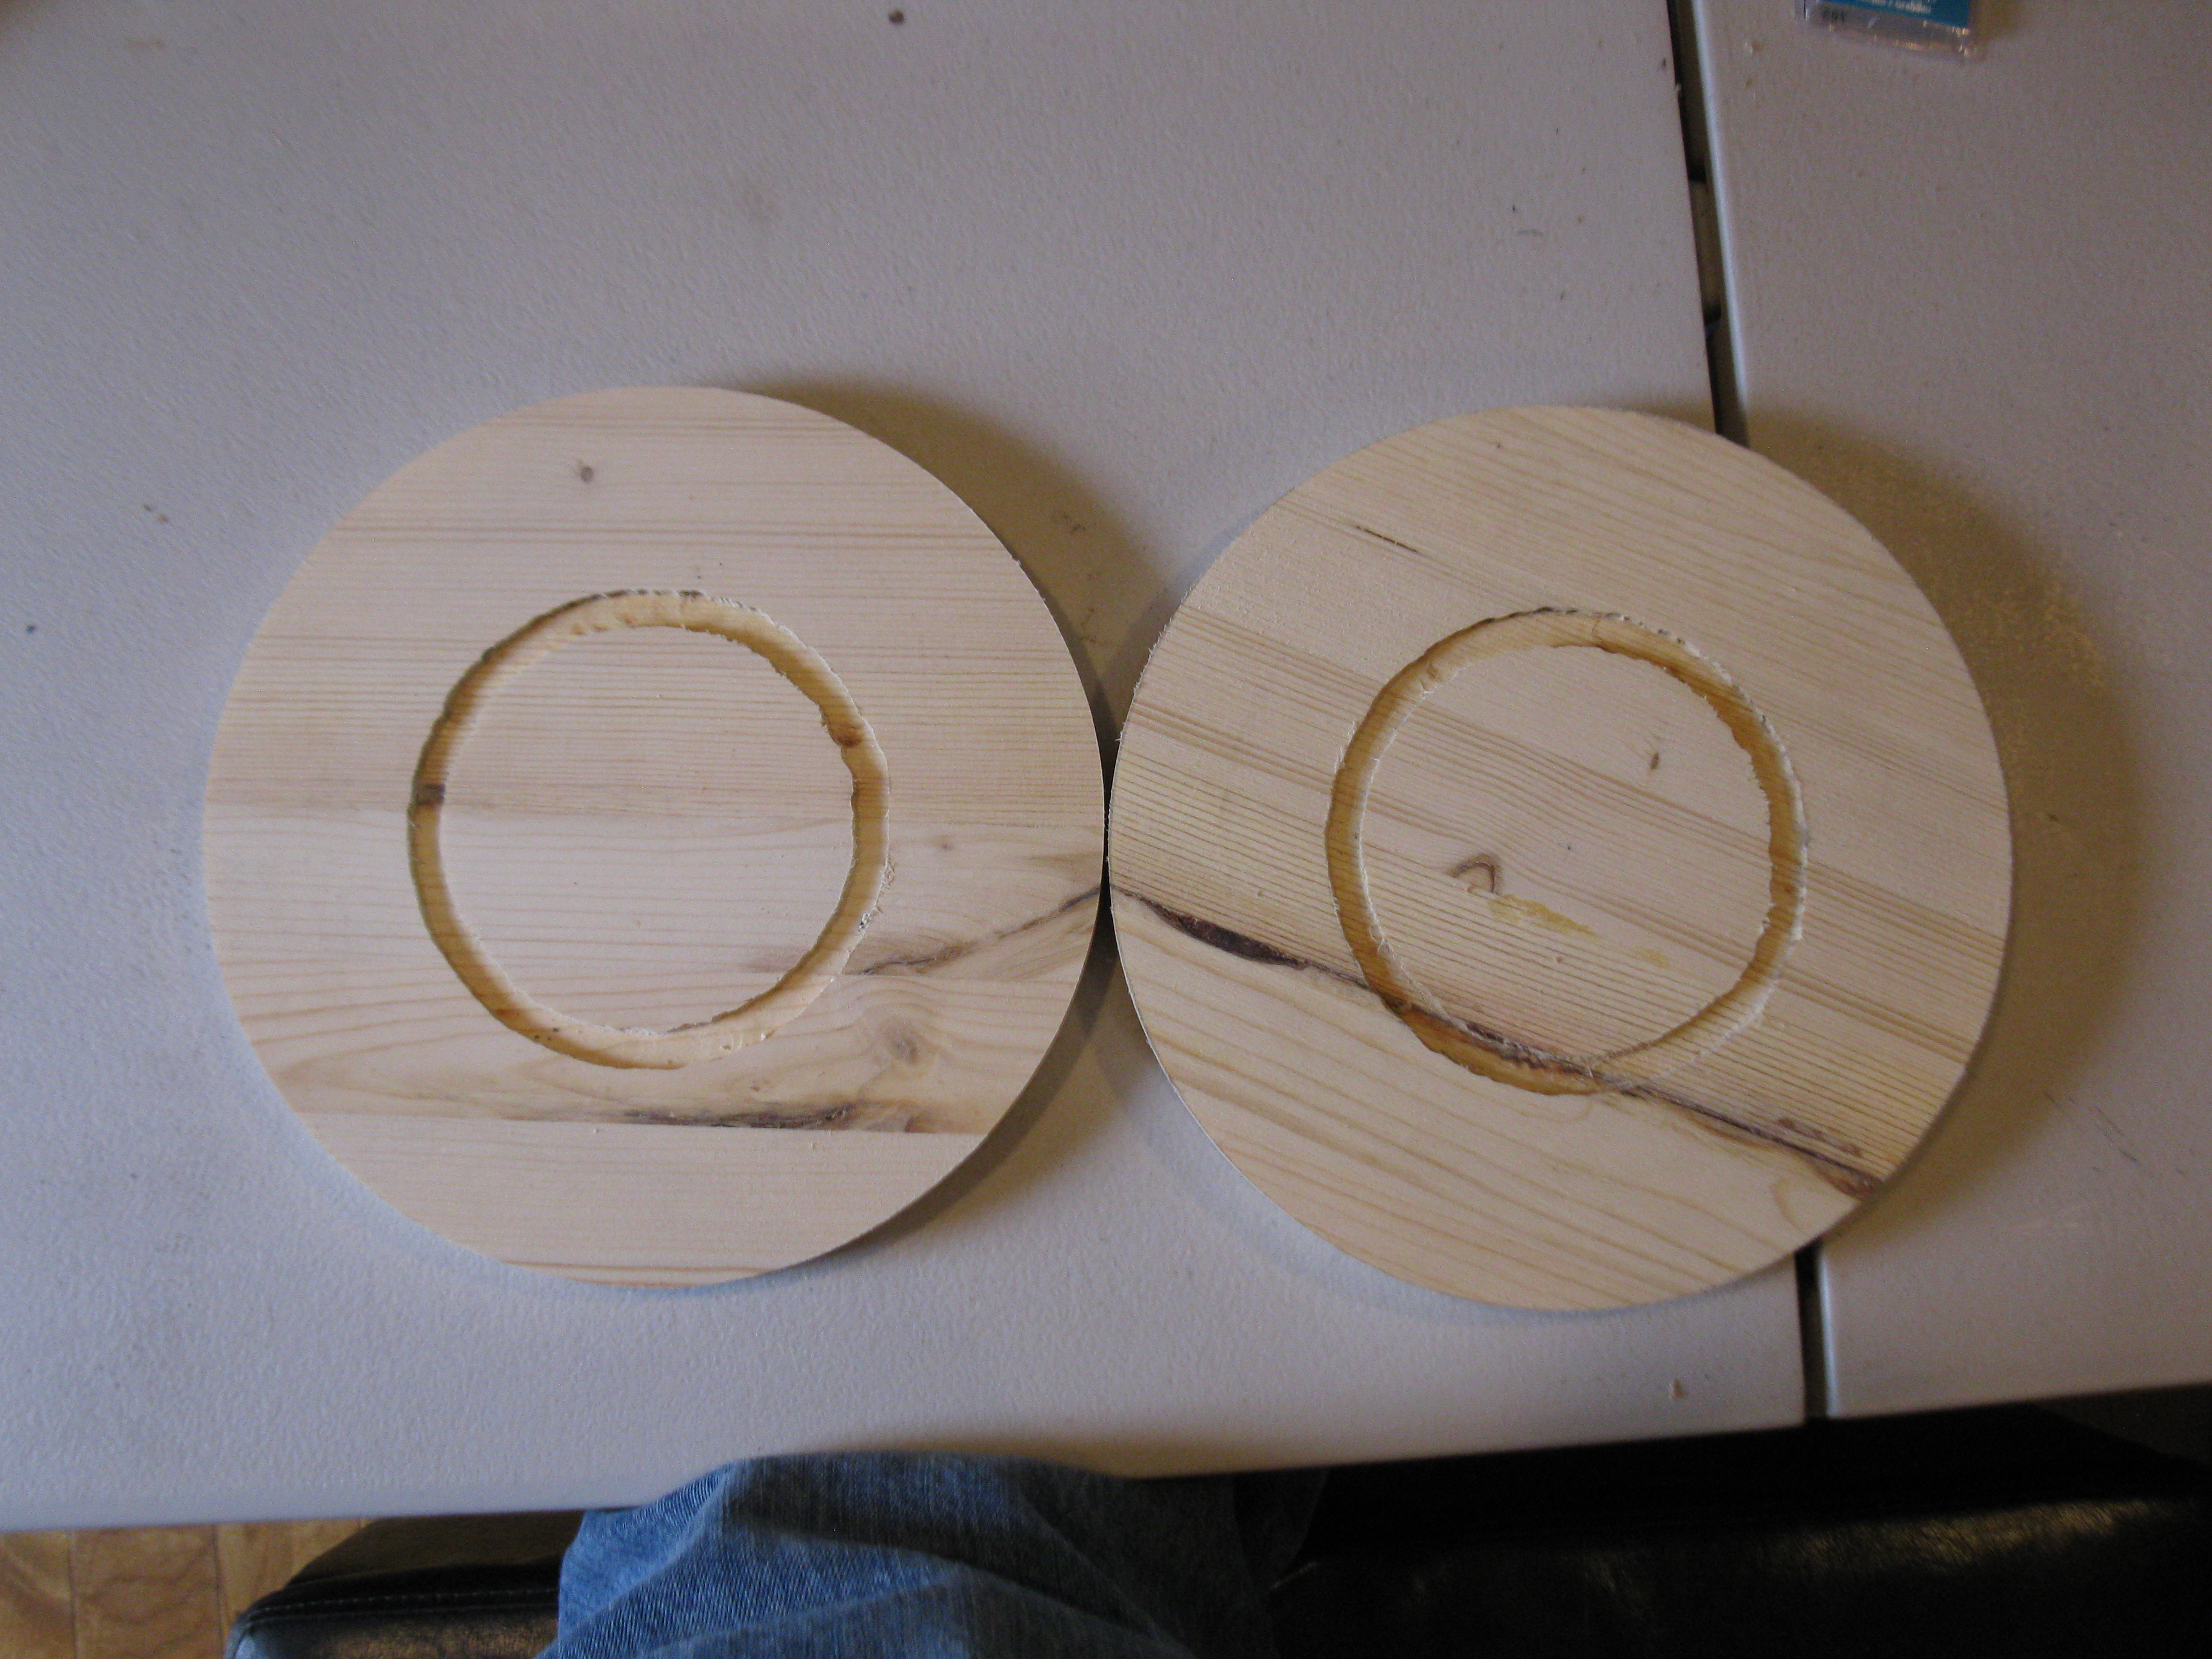 Picture of Preparing the Top and Bottom Discs